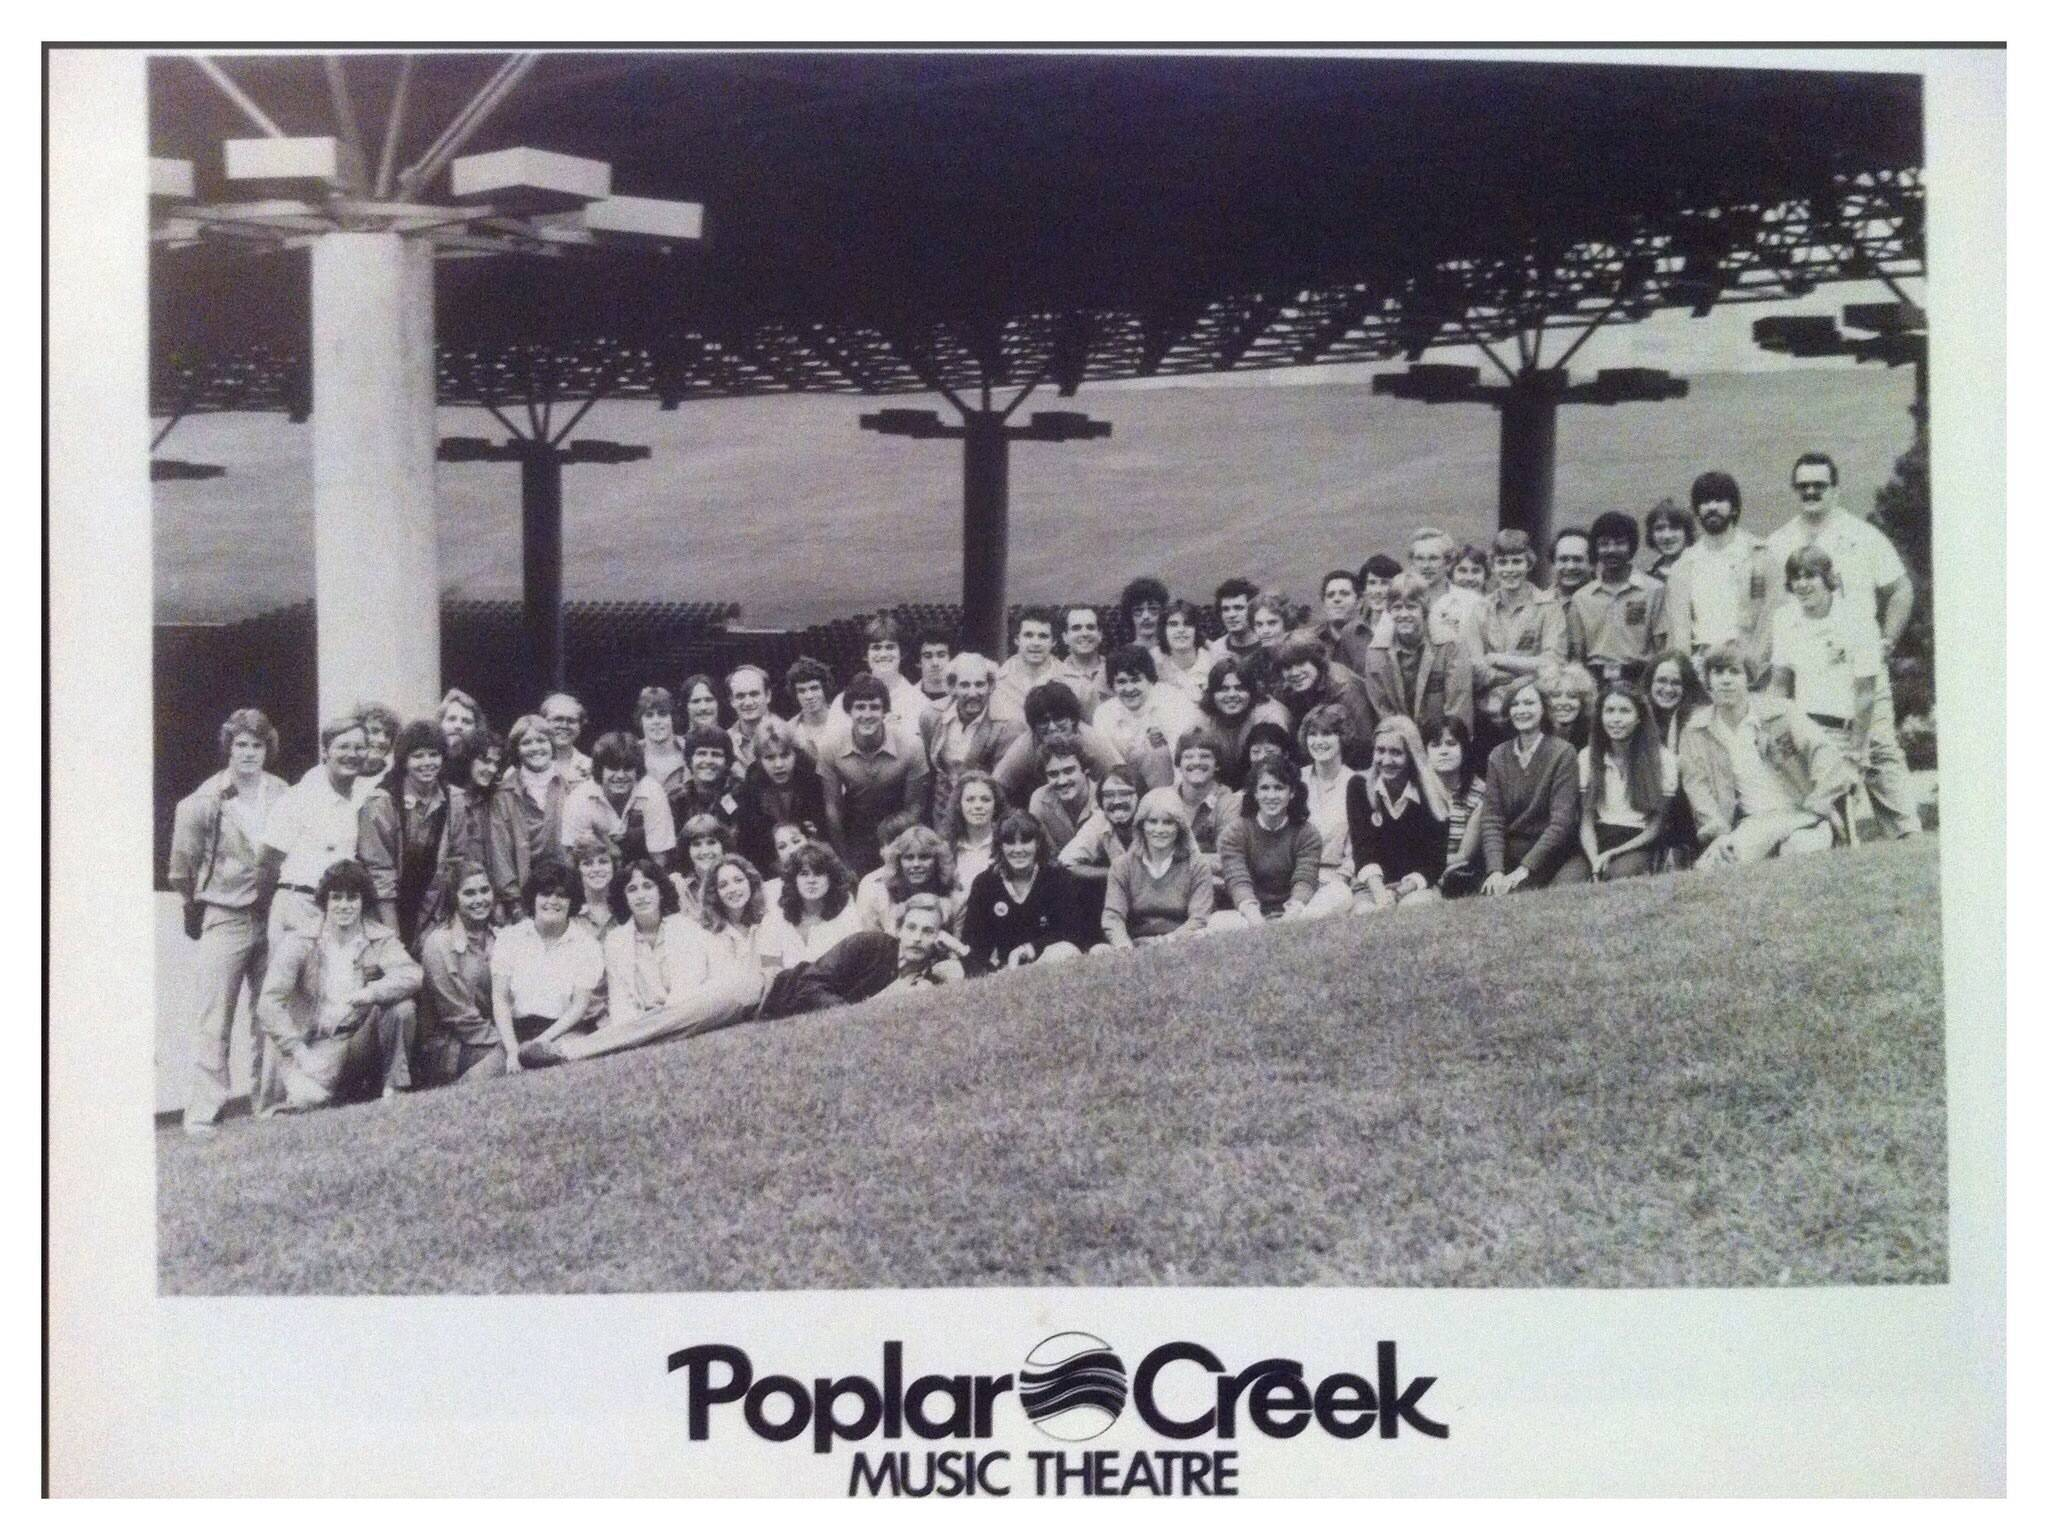 The staff poses on the lawn at the old Poplar Creek Music Theatre in Hoffman Estates.